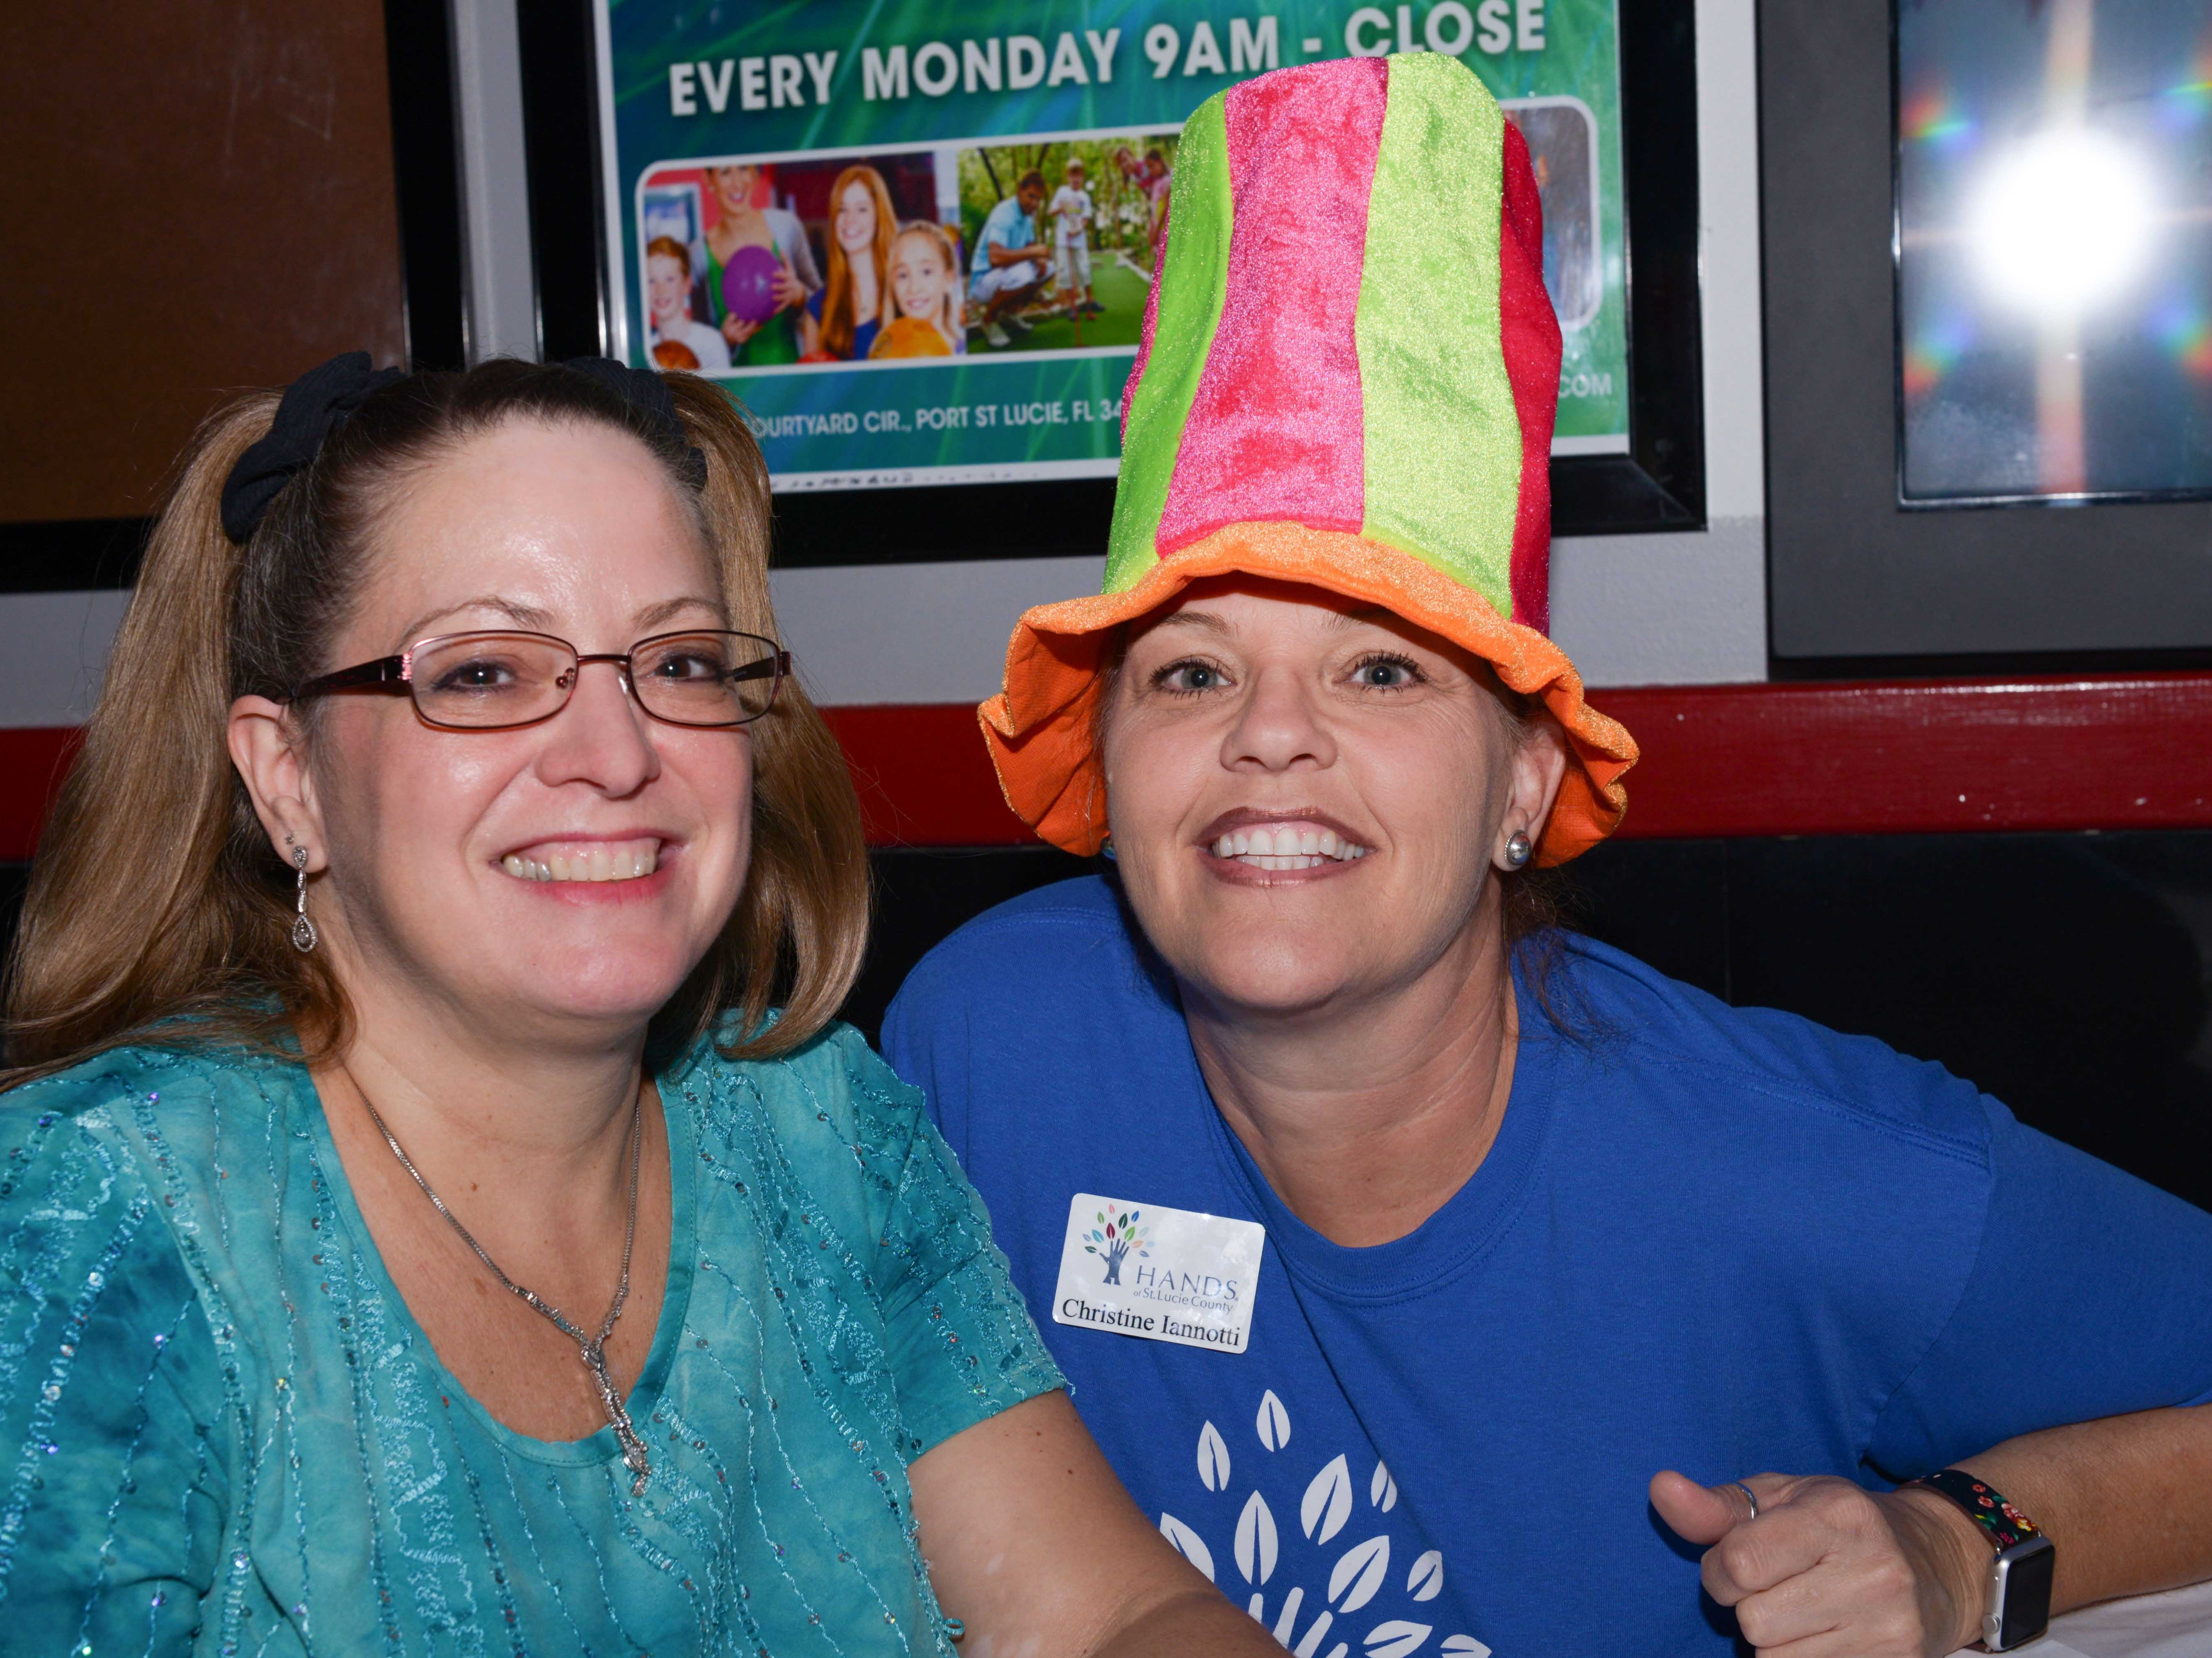 Tammy Crandell and Christine Iannotti at the Cosmic Family Fun event  to support HANDSof St. Lucie County.